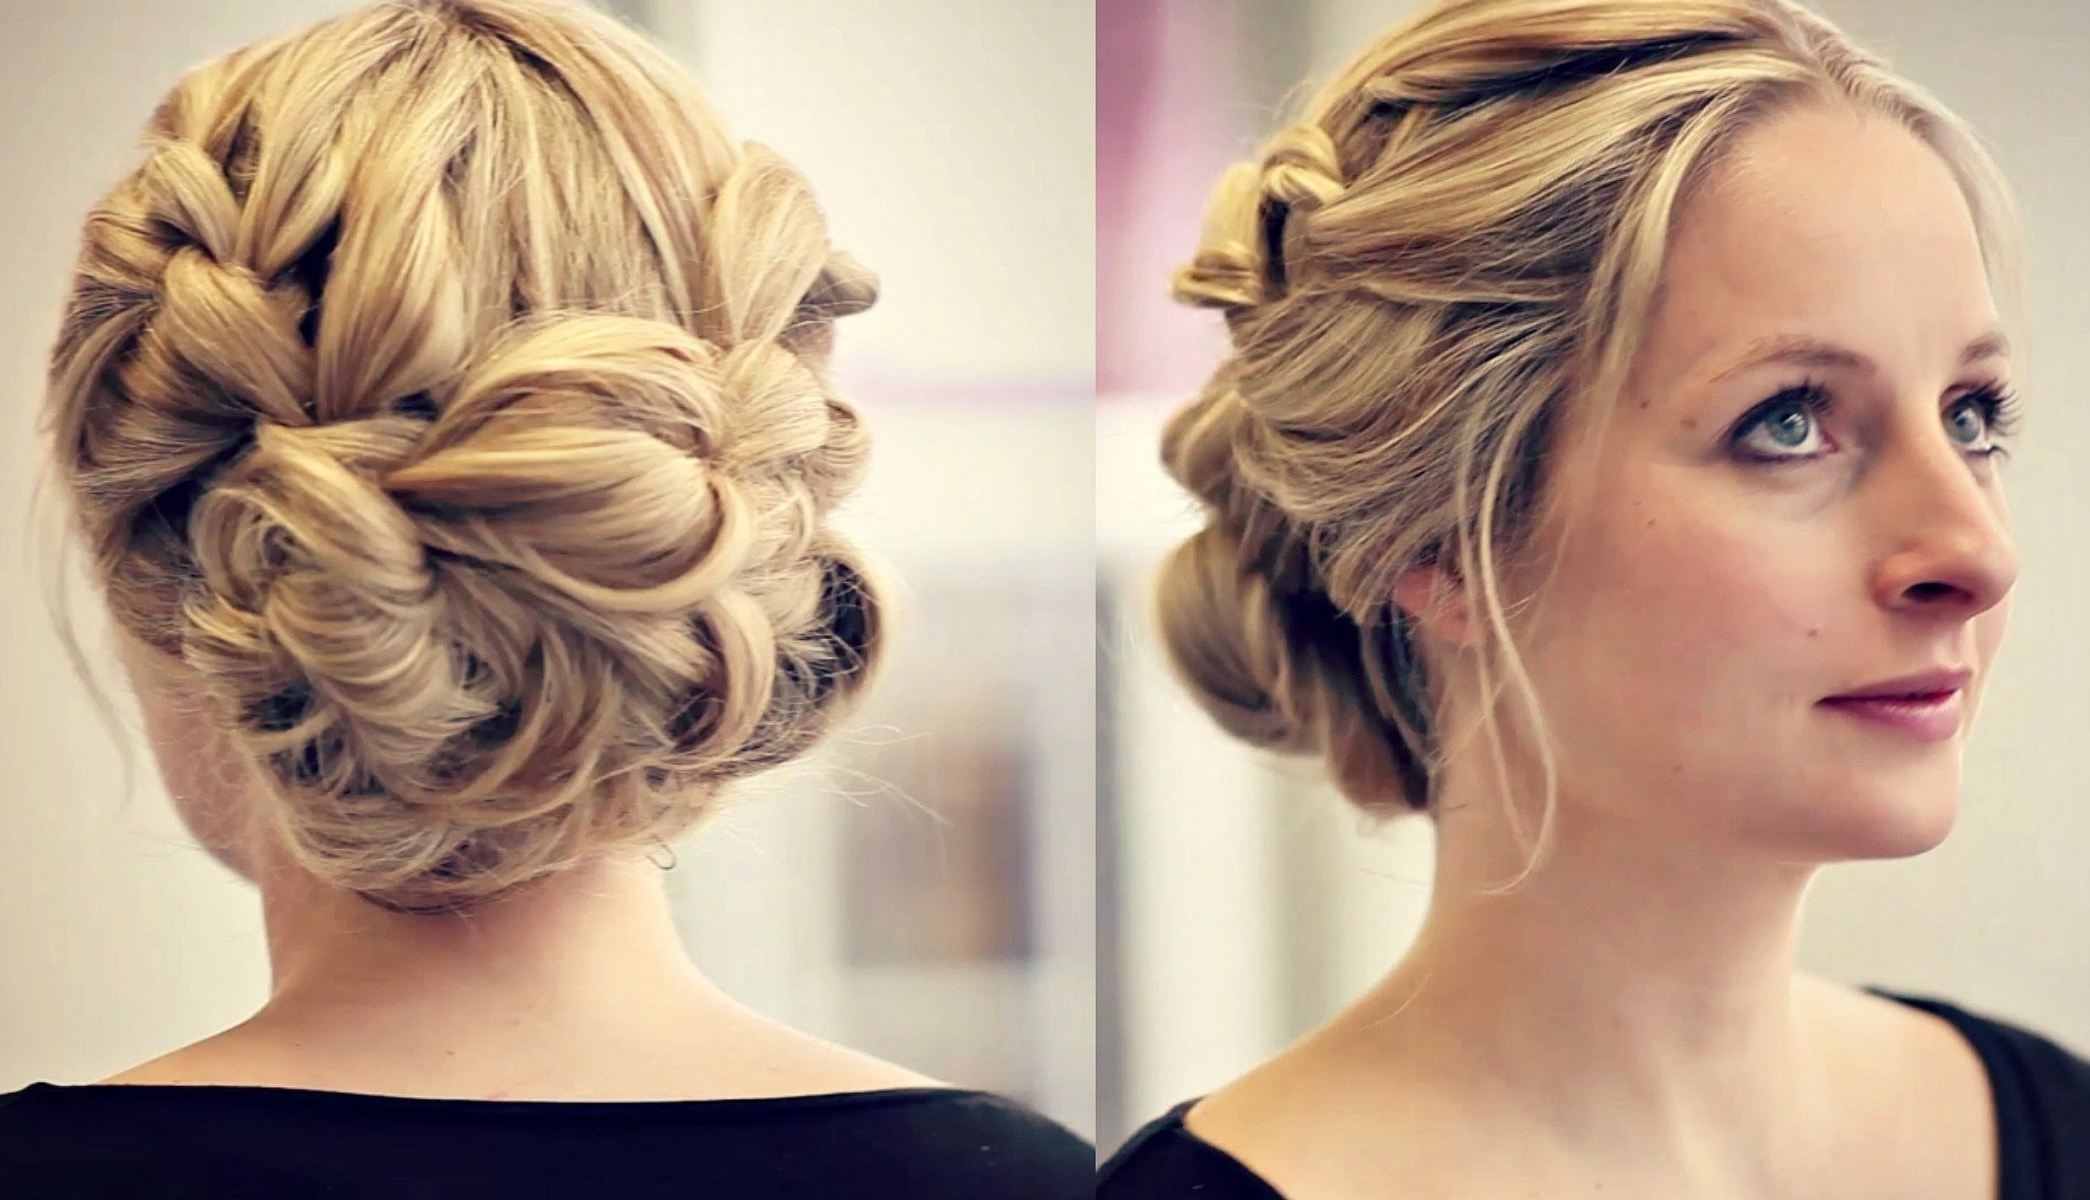 Updos For Weddings Bridesmaid Wedding Hairstyles Bridesmaid On For Preferred Wedding Hairstyles For Bridesmaid (Gallery 4 of 15)